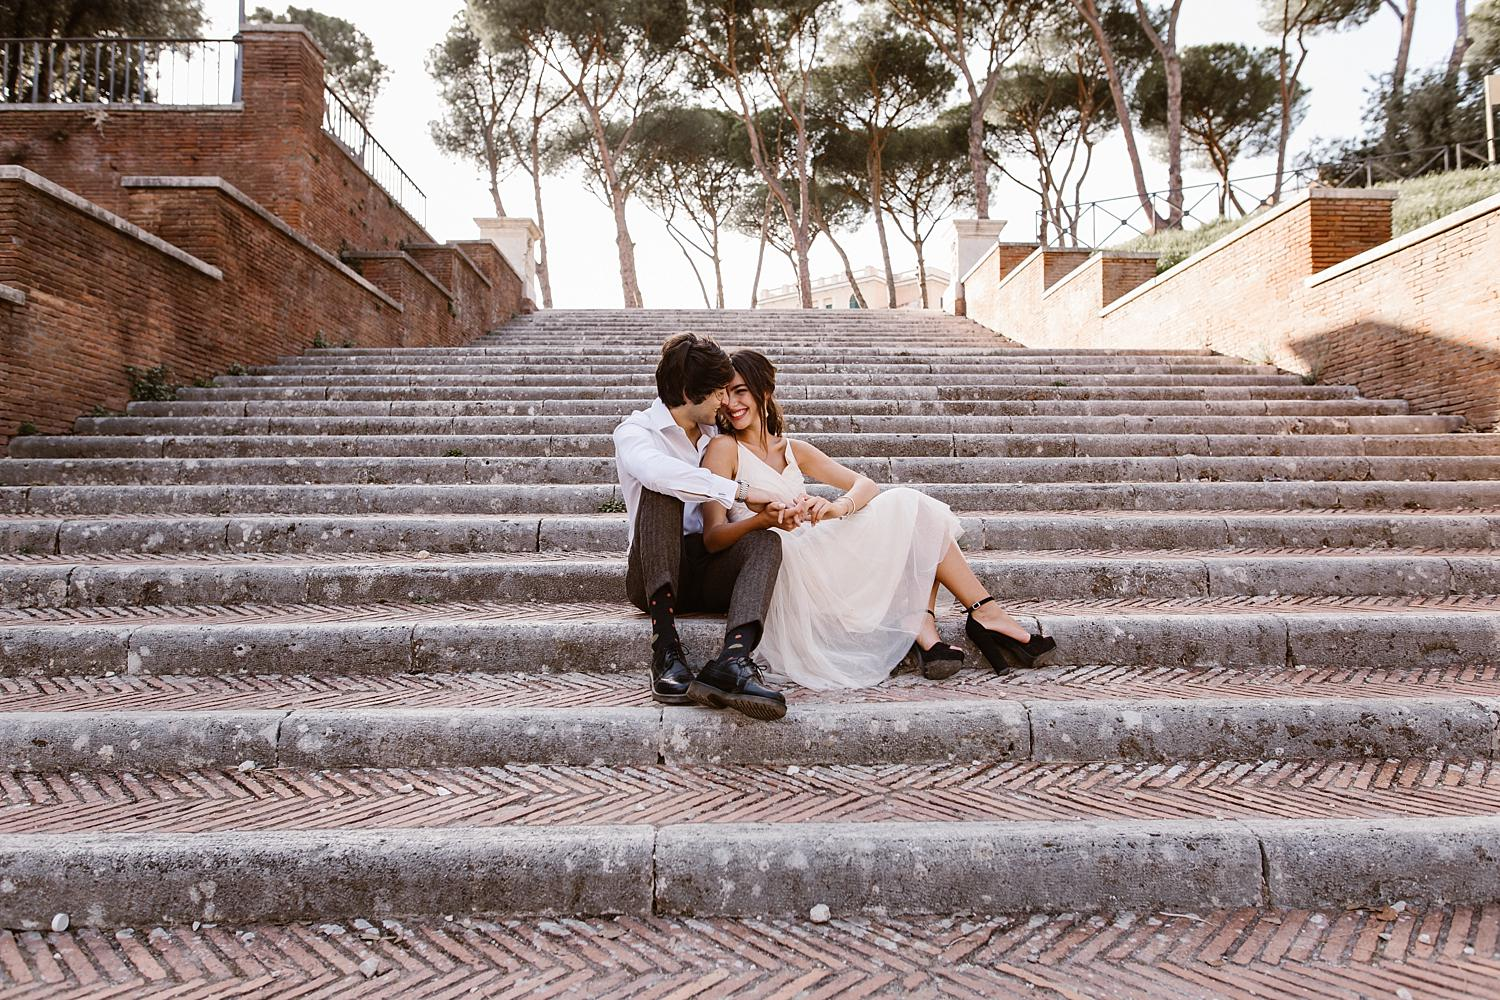 gs weddingphotographer rome 29 - Giulia & Simone - Elegant Couple Shooting in Rome